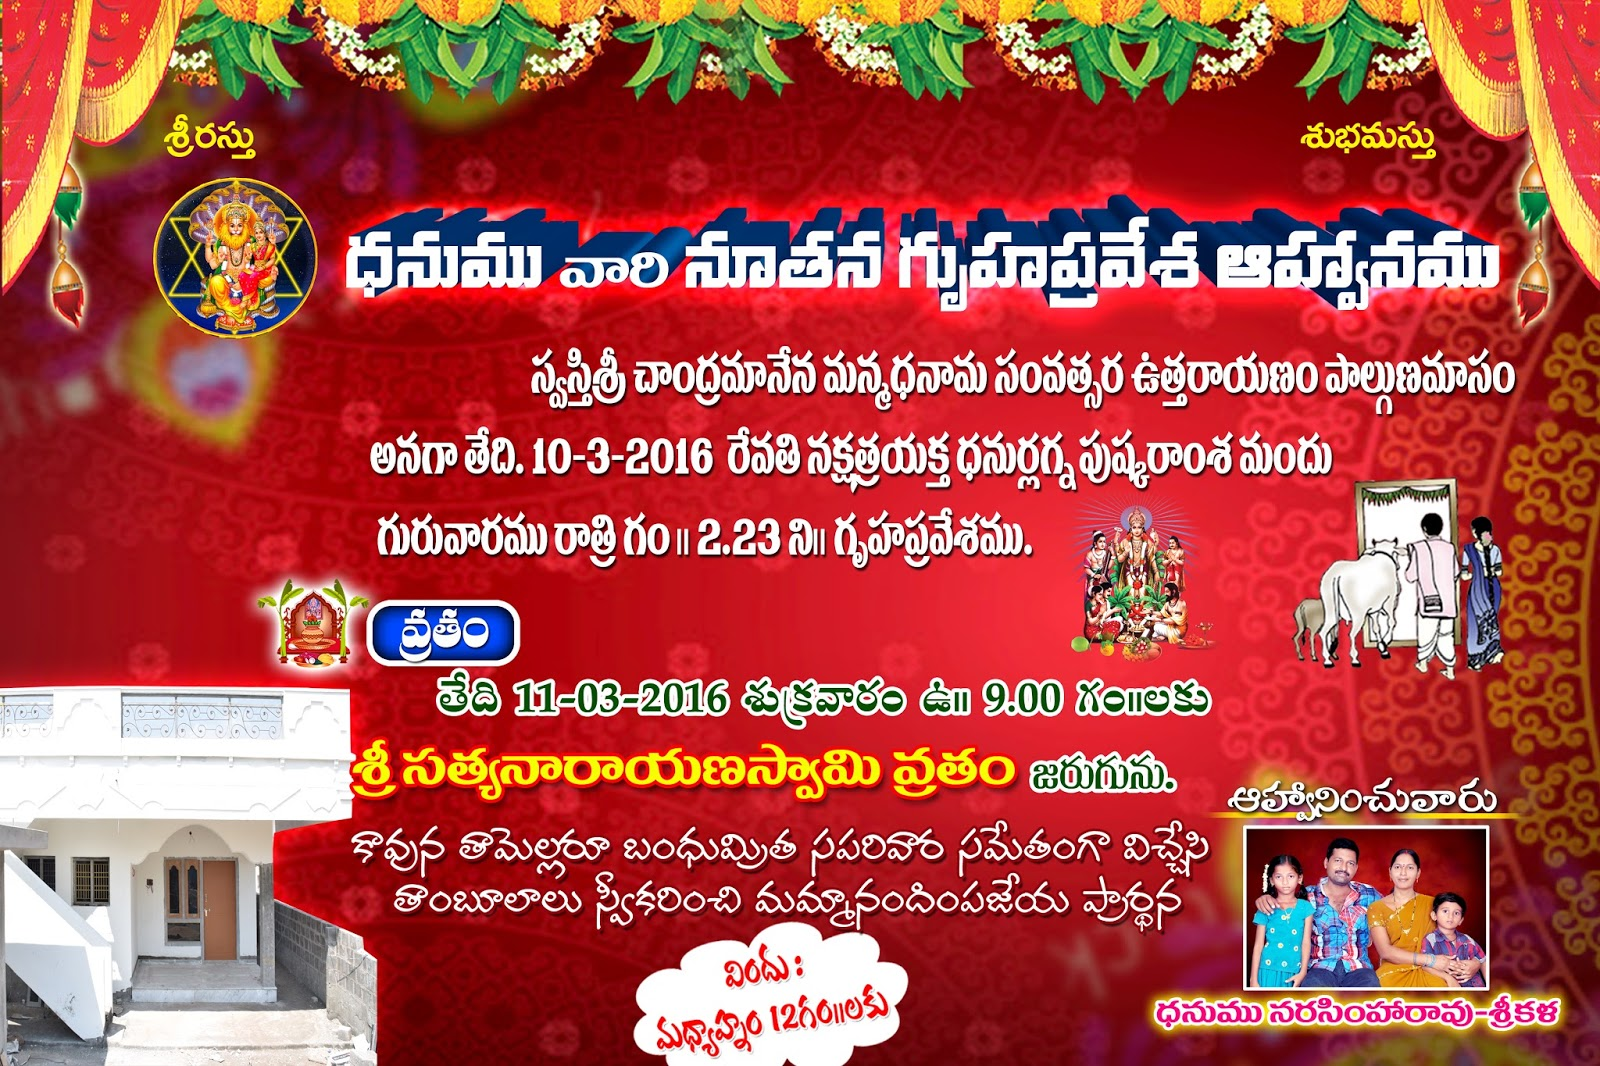 Invitation Card In Telugu | purplemoon.co